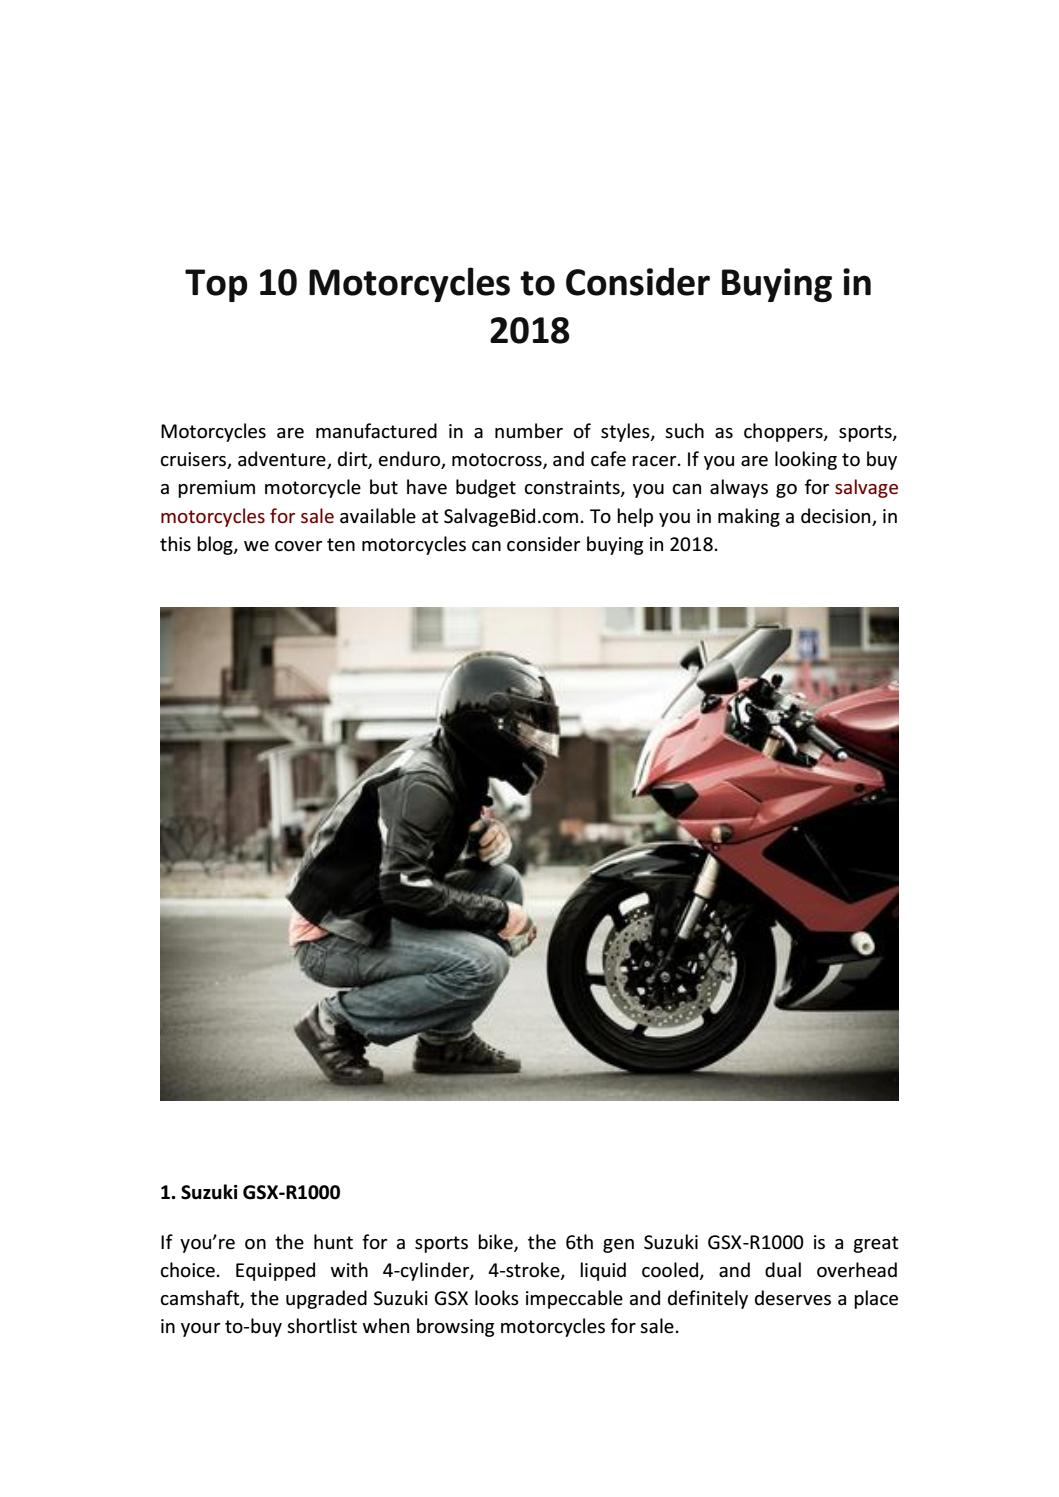 Top 10 Motorcycles to Consider Buying in 2018 by Mark